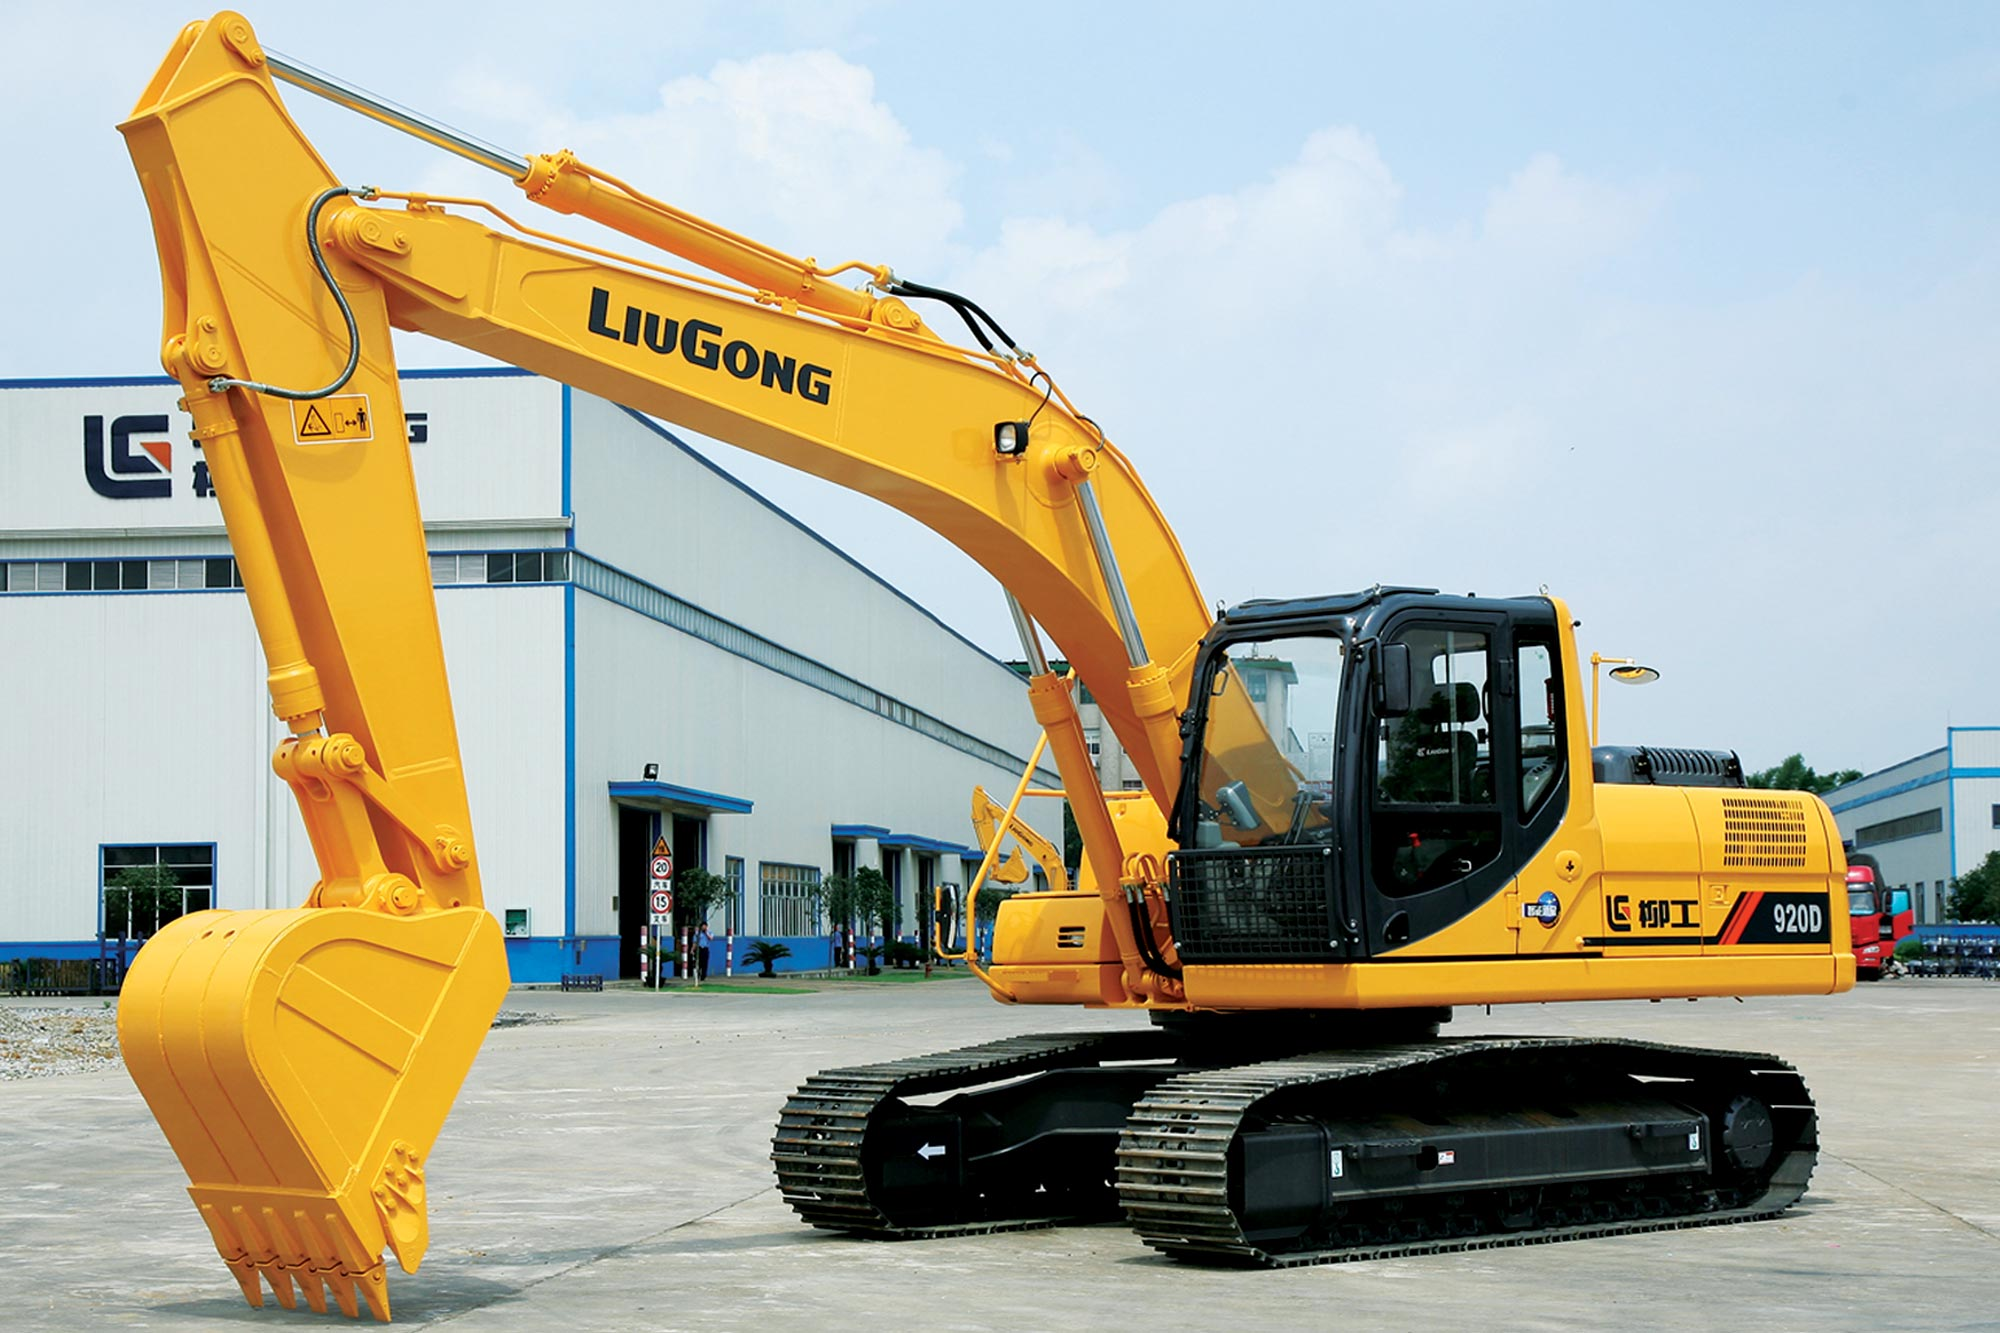 Wheel loader and hydraulic excavators from Liugong